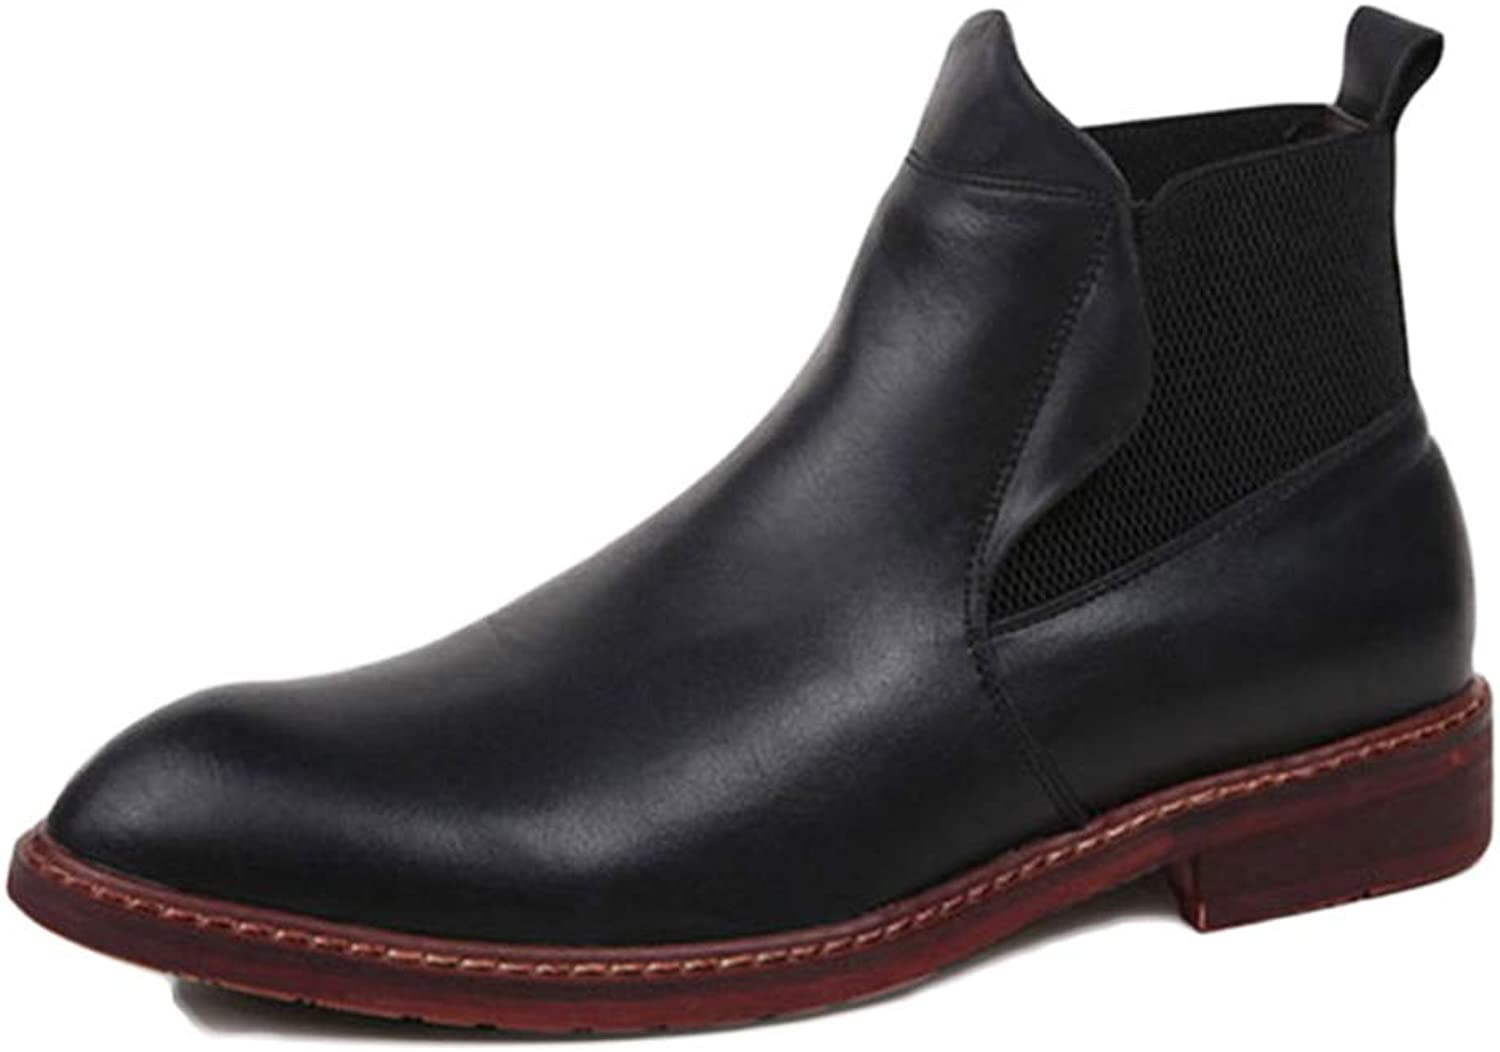 Men's Boots Chelsea Boots Black Leather Wedding Safety Brock Classic High Help